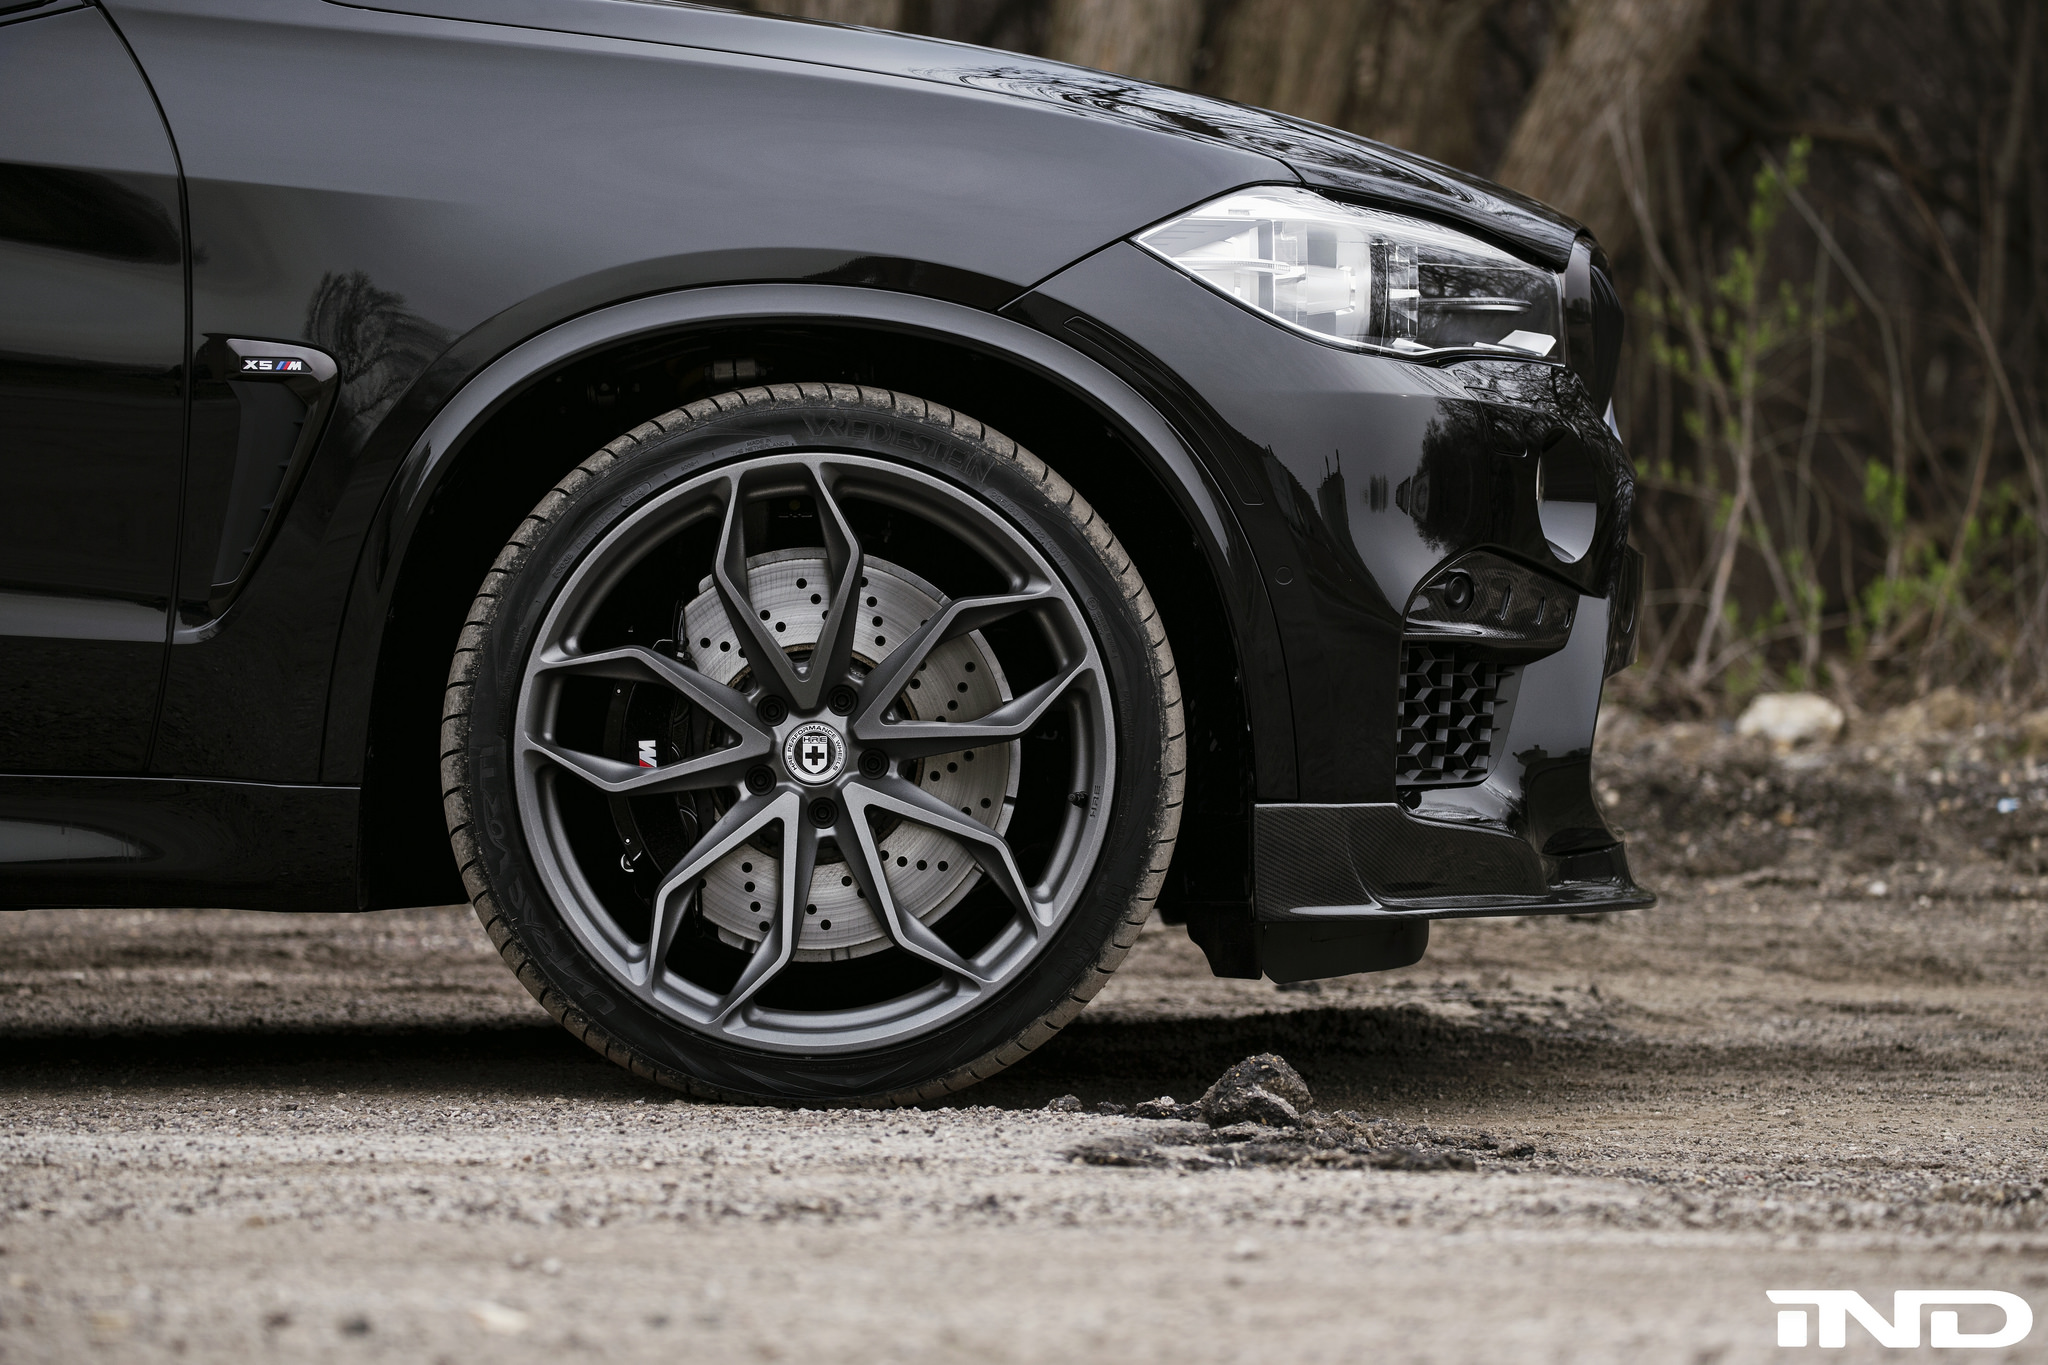 Build A Bmw >> A Menacing Bmw X5 M Build By Ind Distribution